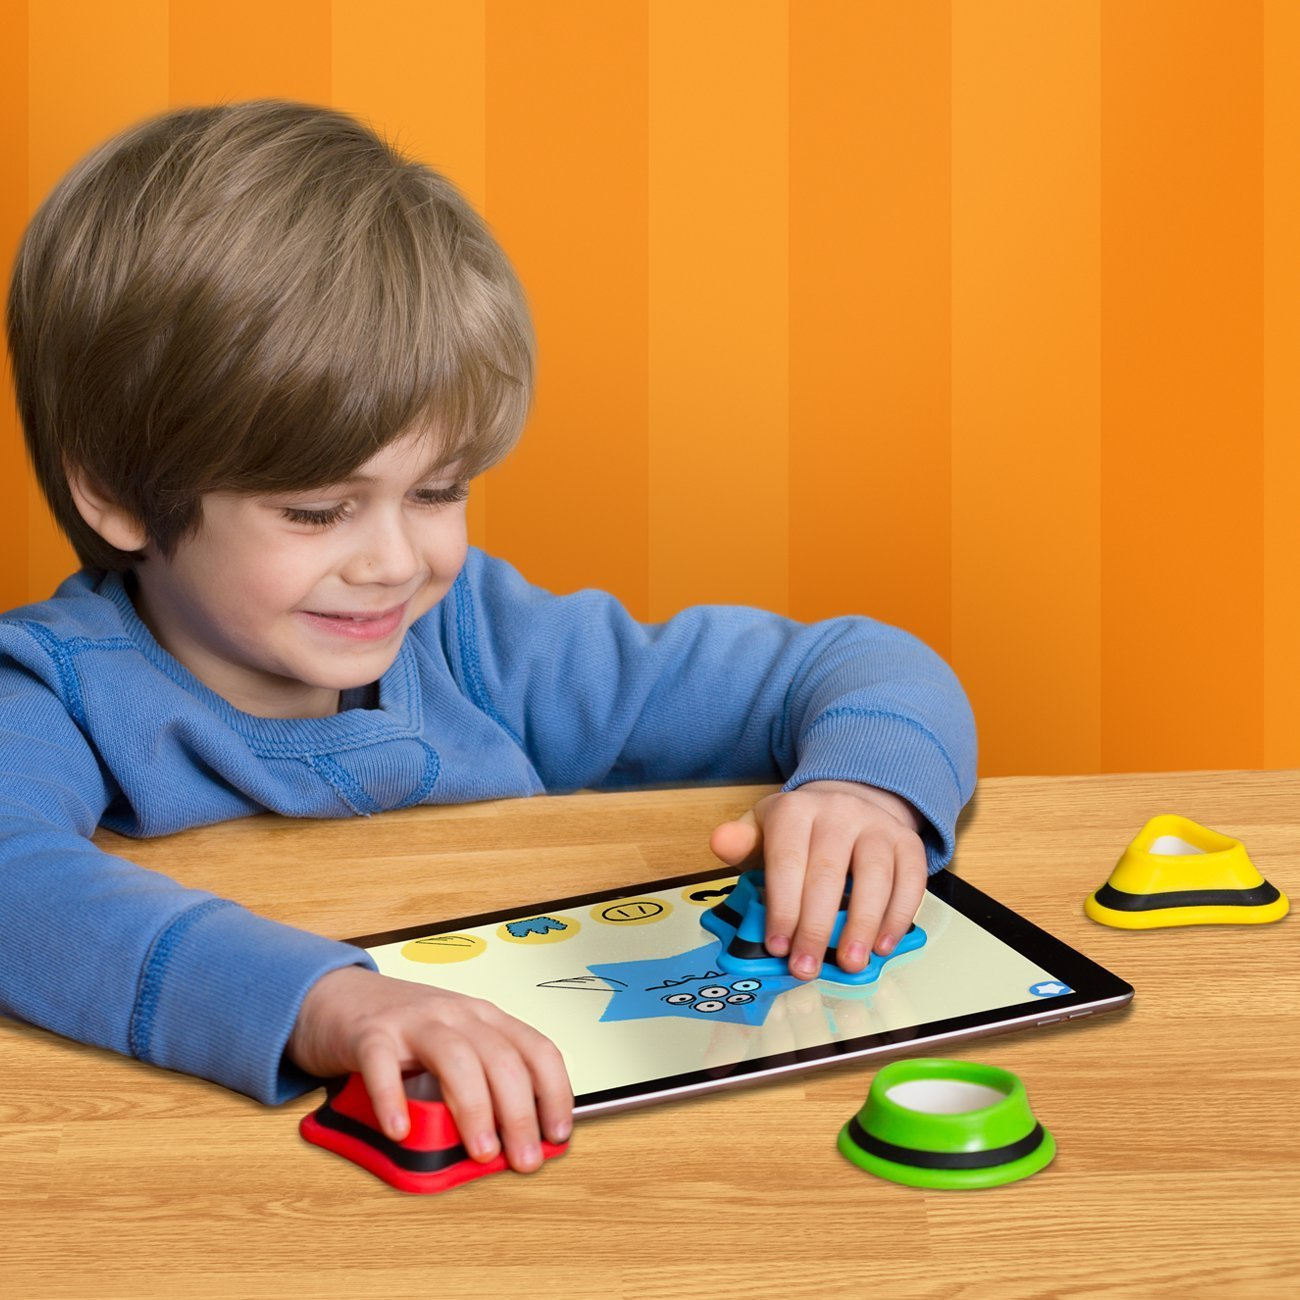 Boy playing with Kidtellect Tiggly Shapes.jpg